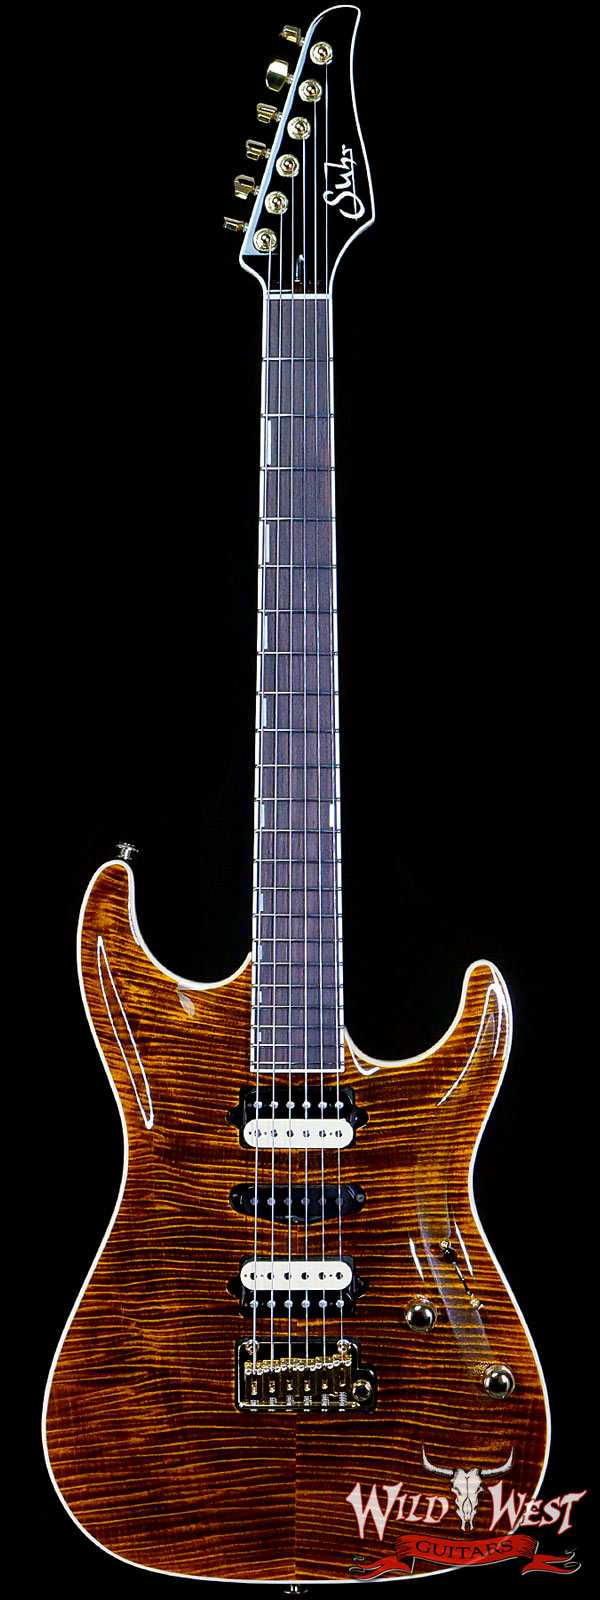 Suhr Custom Standard Carve Top HSH Hand-Selected Flame Maple w/ Alder Indian Rosewood Fingerboard Bengal